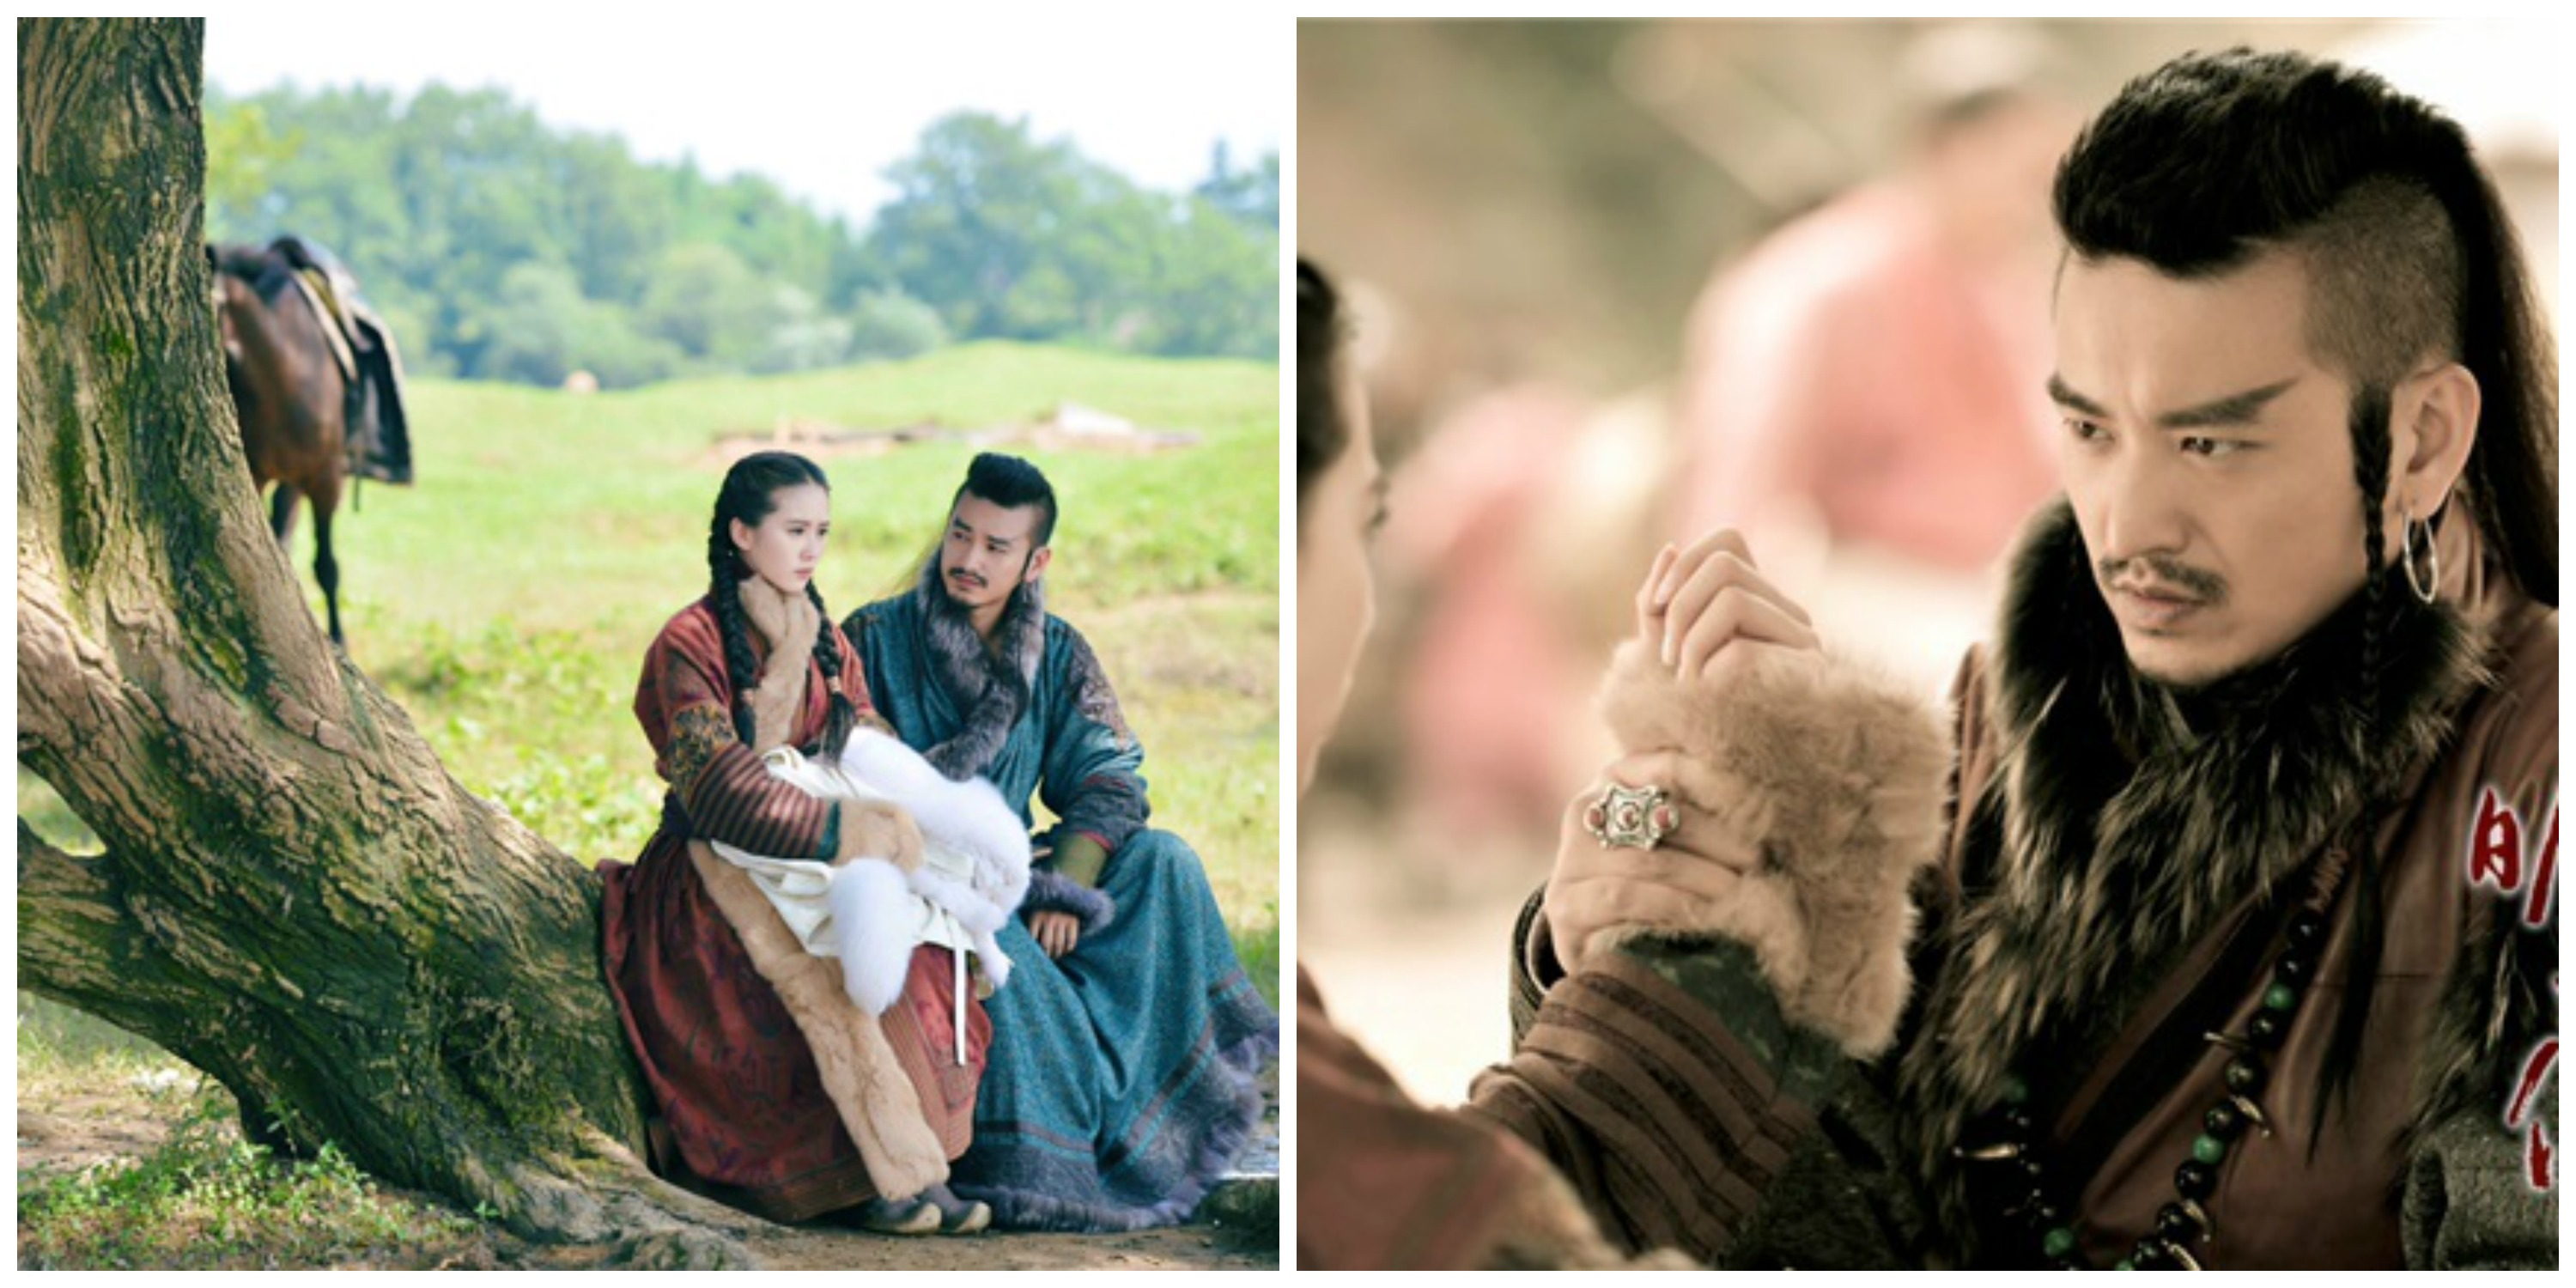 Top 5 Best Chinese Historical Romance Dramas - Korea in Beauty